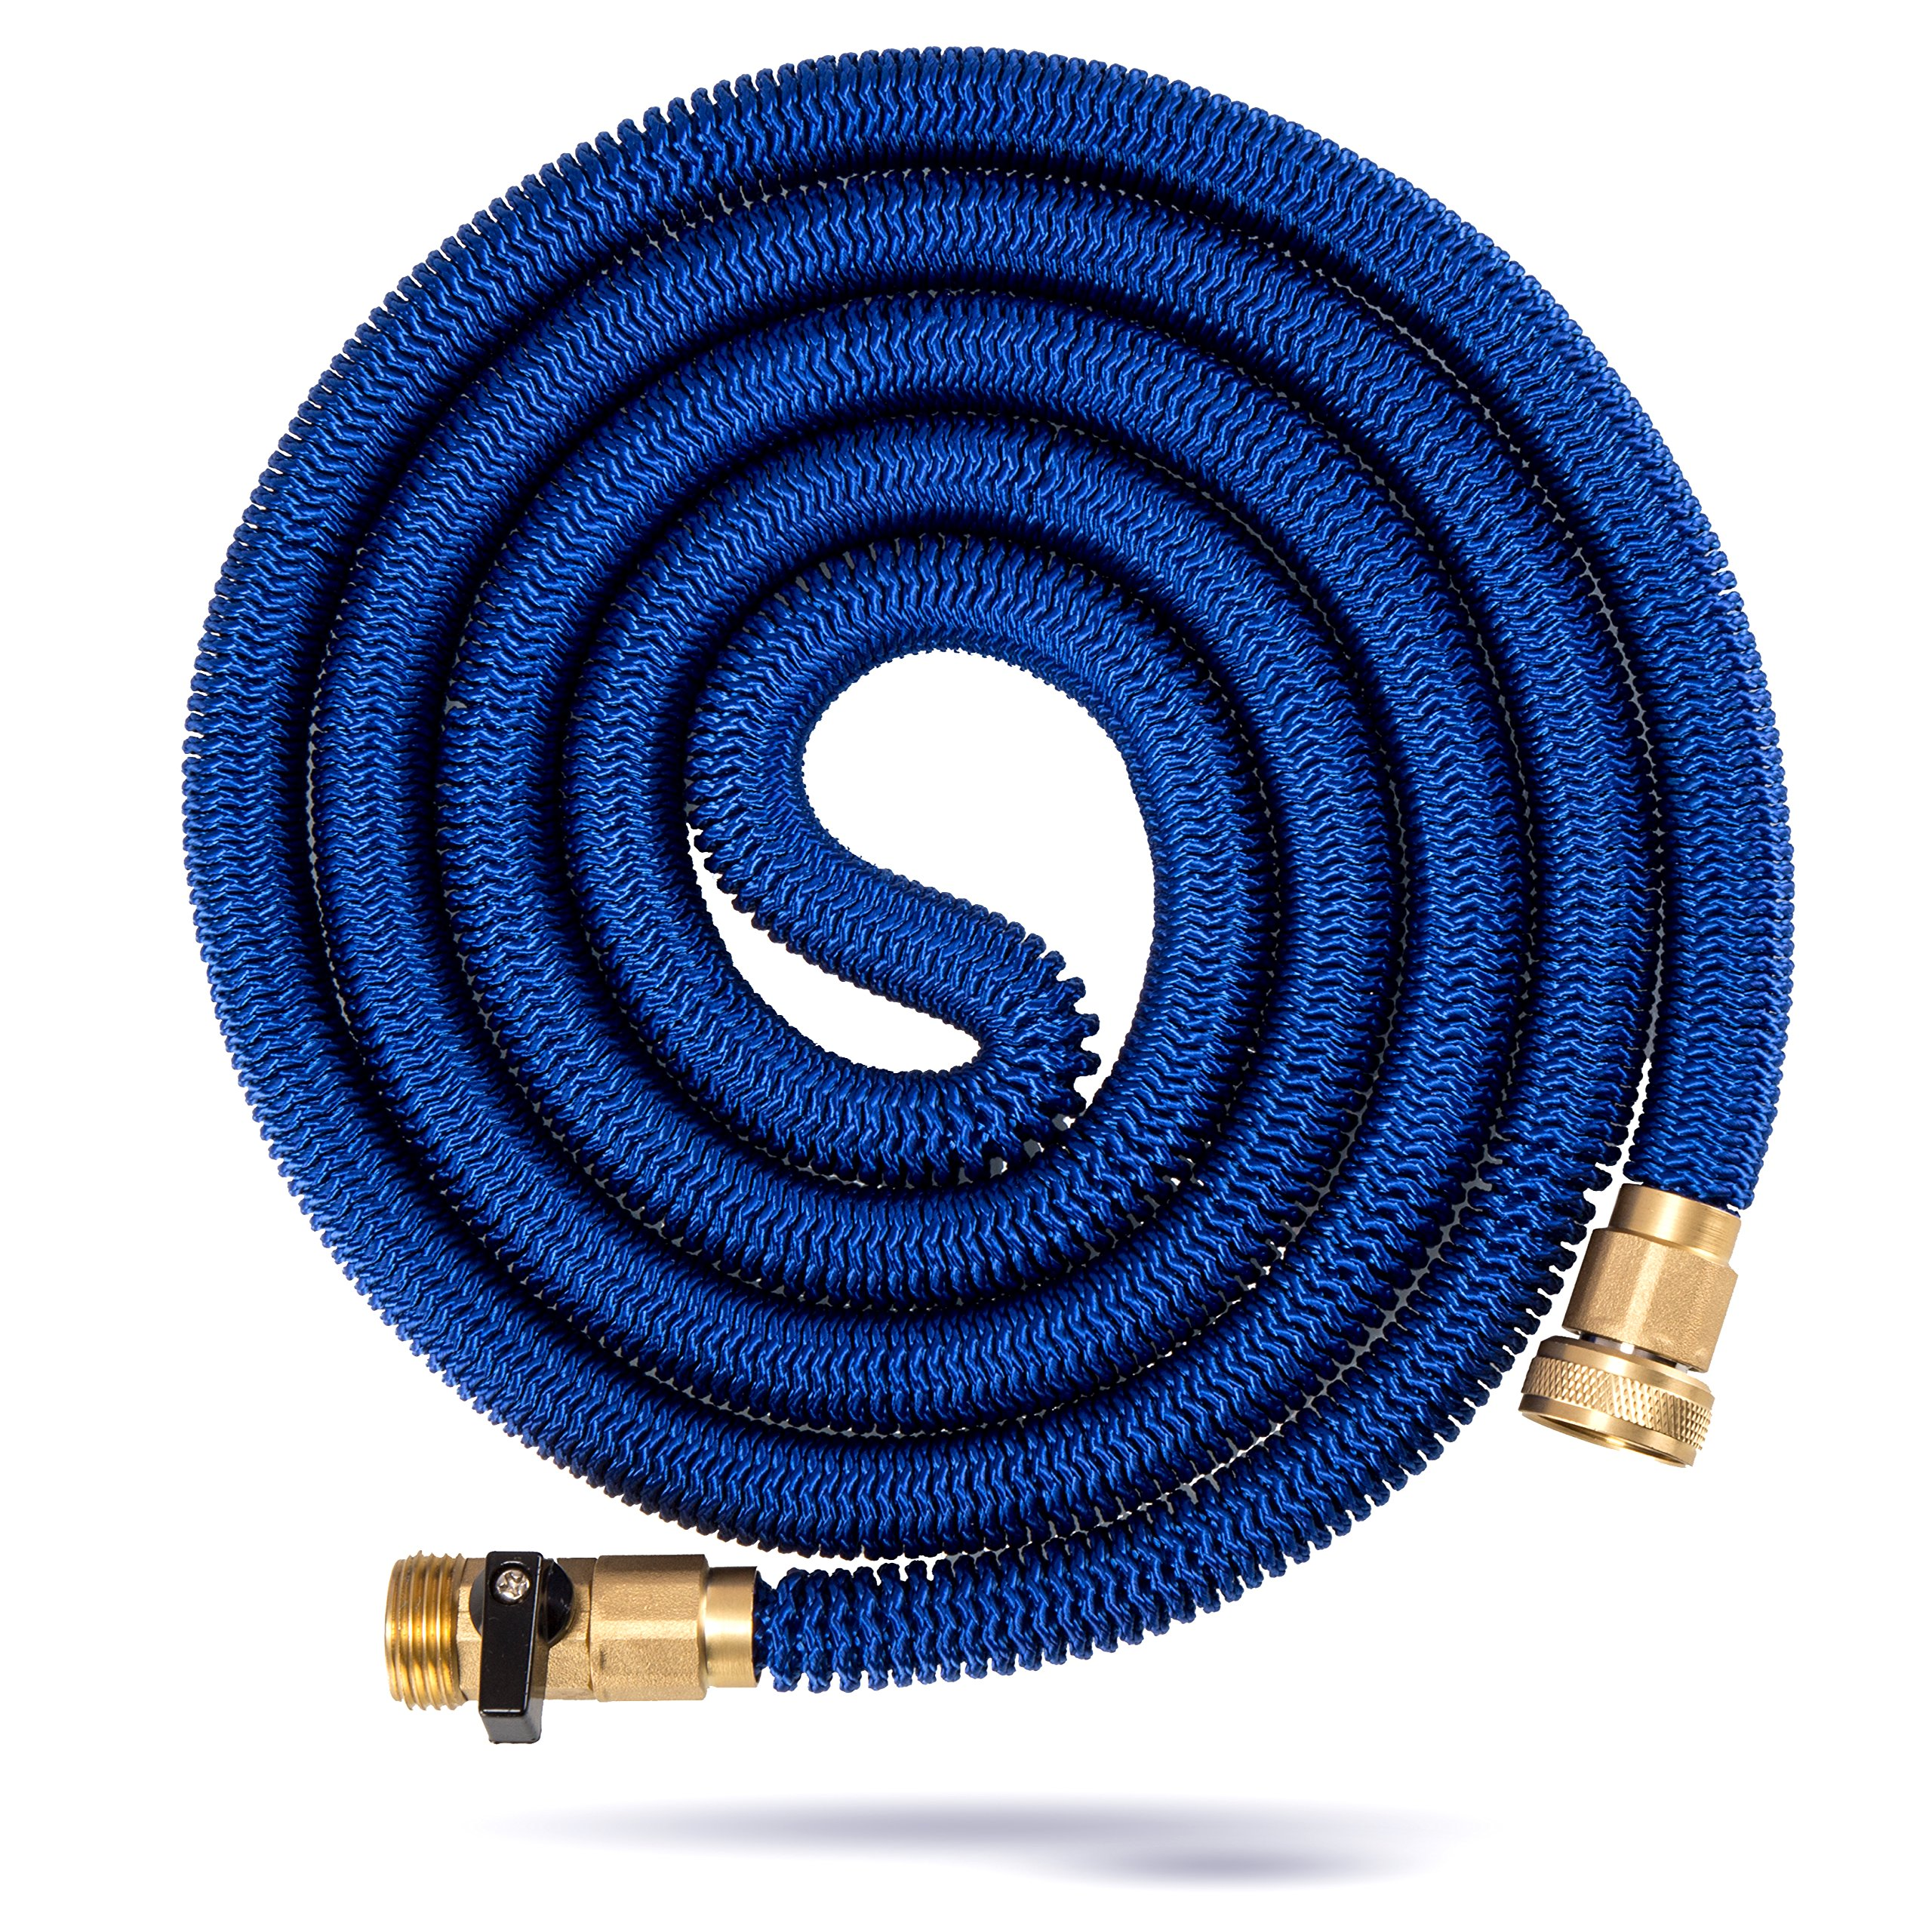 Kevri Expandable Garden Hose (50 Feet) Tangle and Kink Free Coil | Lawn and Gardening for Plants, Flowers, Vegetables | Heavy-Duty, Multipurpose Home Use by Kevri